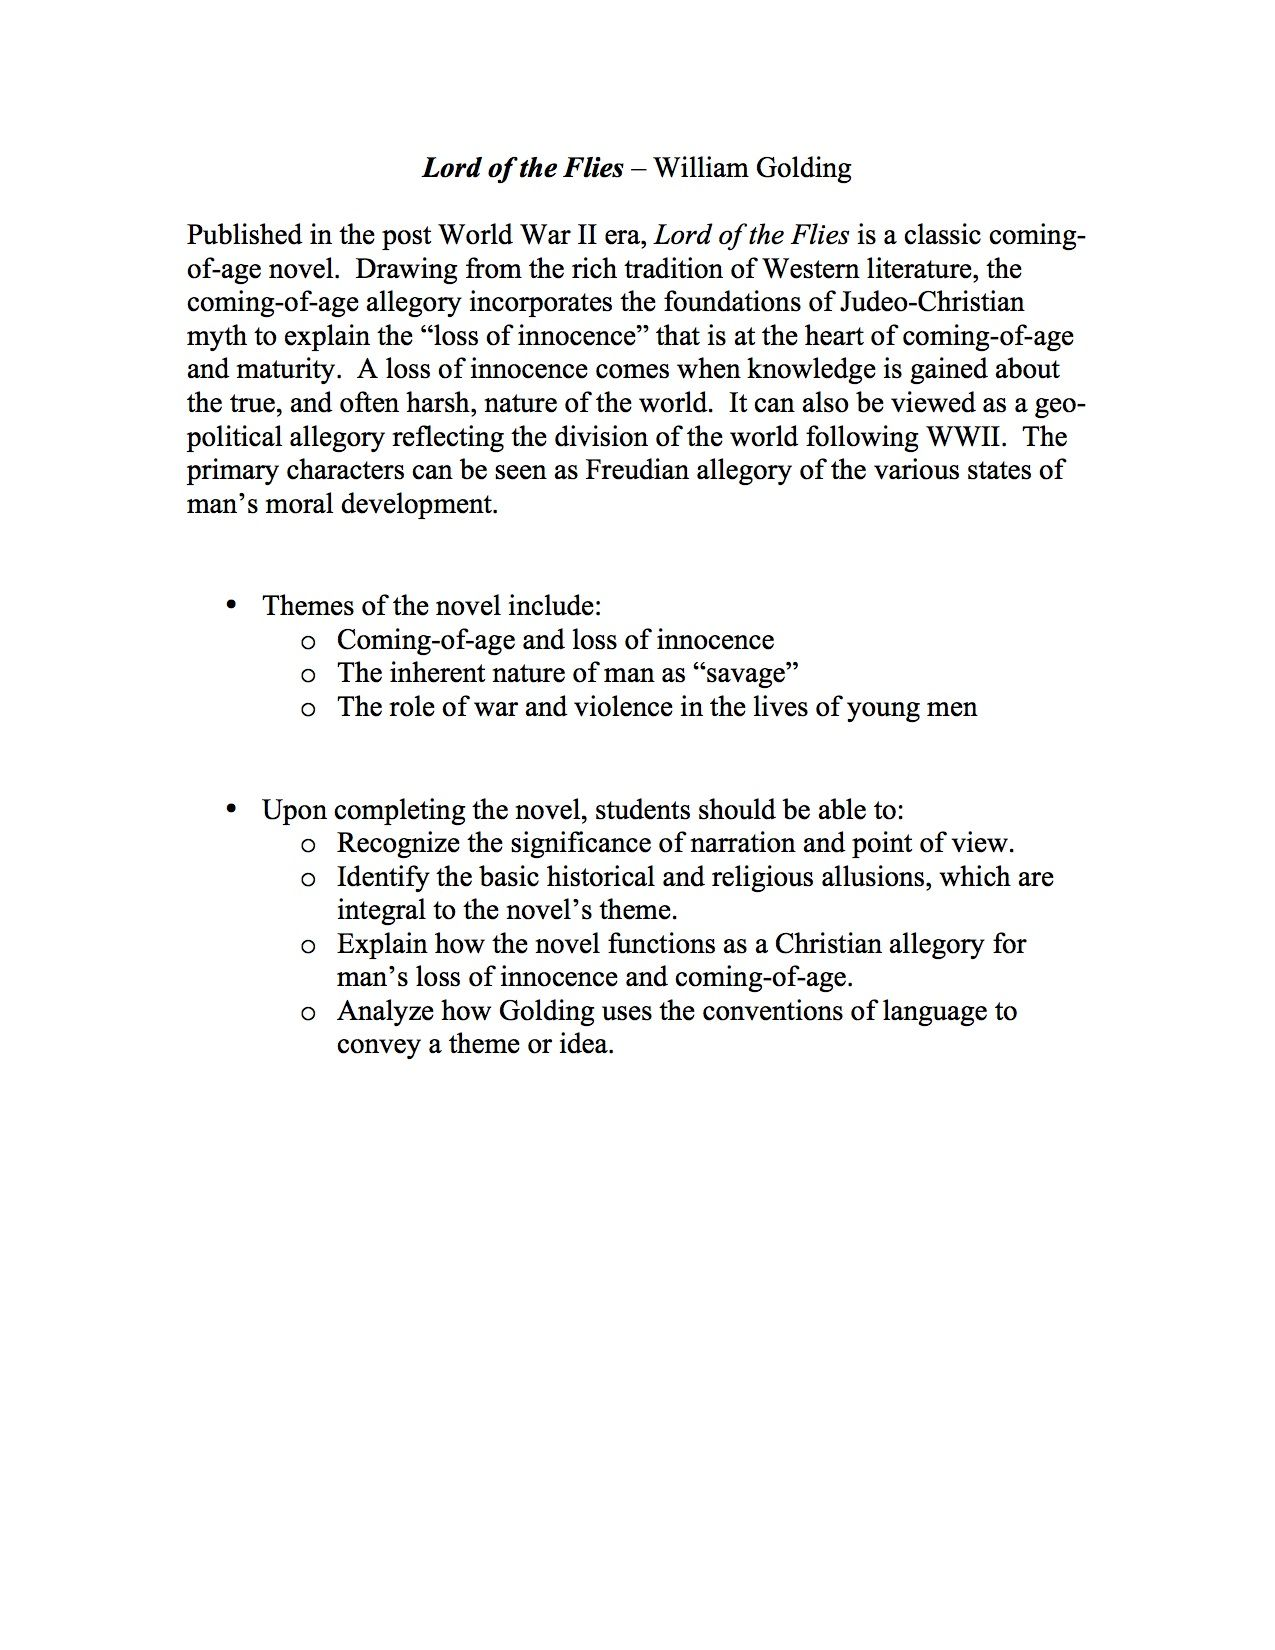 Worksheets Lord Of The Flies Vocabulary Worksheet lord of the flies unit materials is a comprehensive